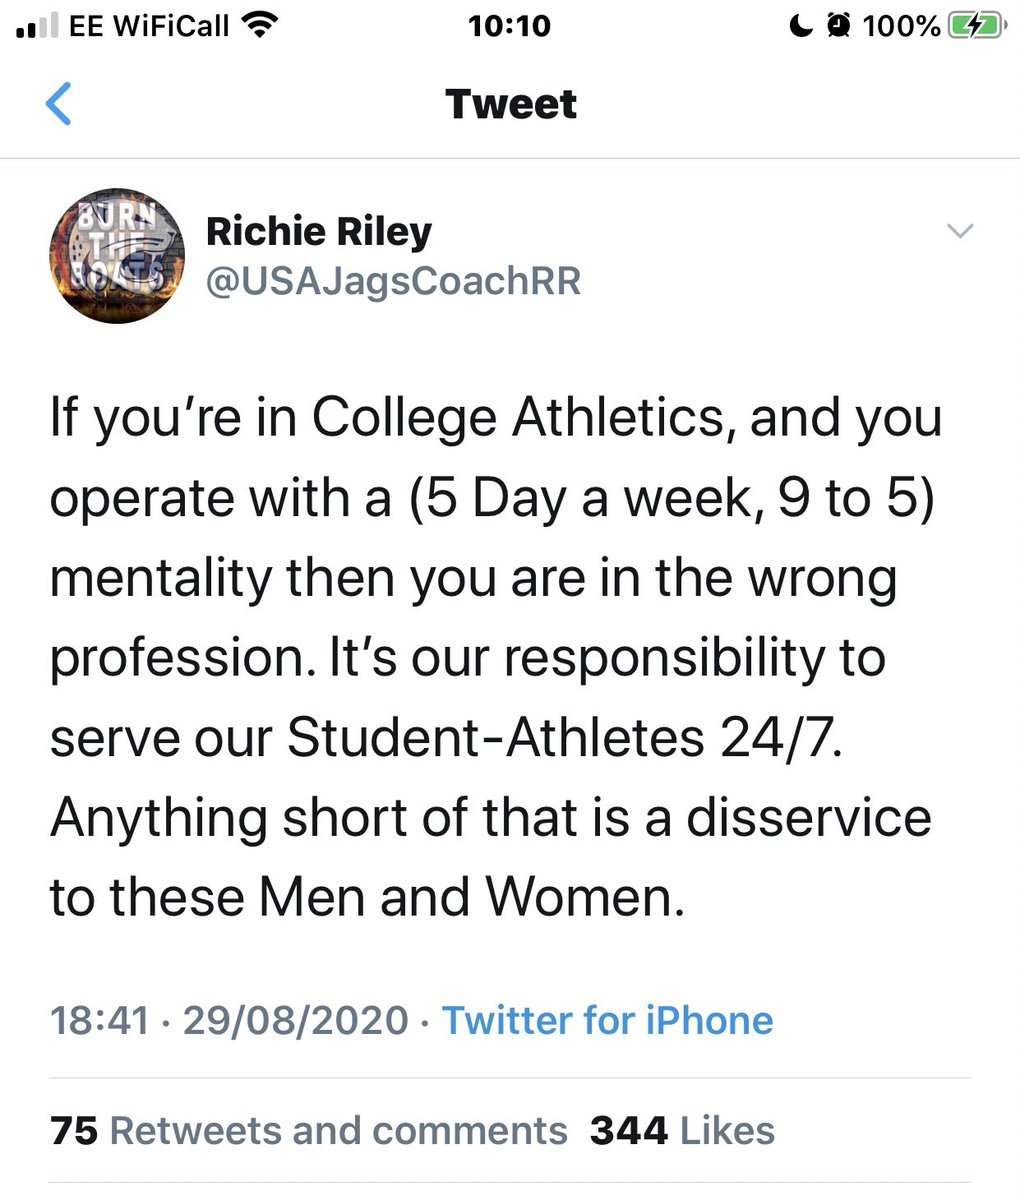 It's this type of tweet that glorifies the fantasy of the grind and leads to coaches being burnt out at the age of 30.  👇🏼Absolute nonsense 😡 https://t.co/dnGT3pxLA7